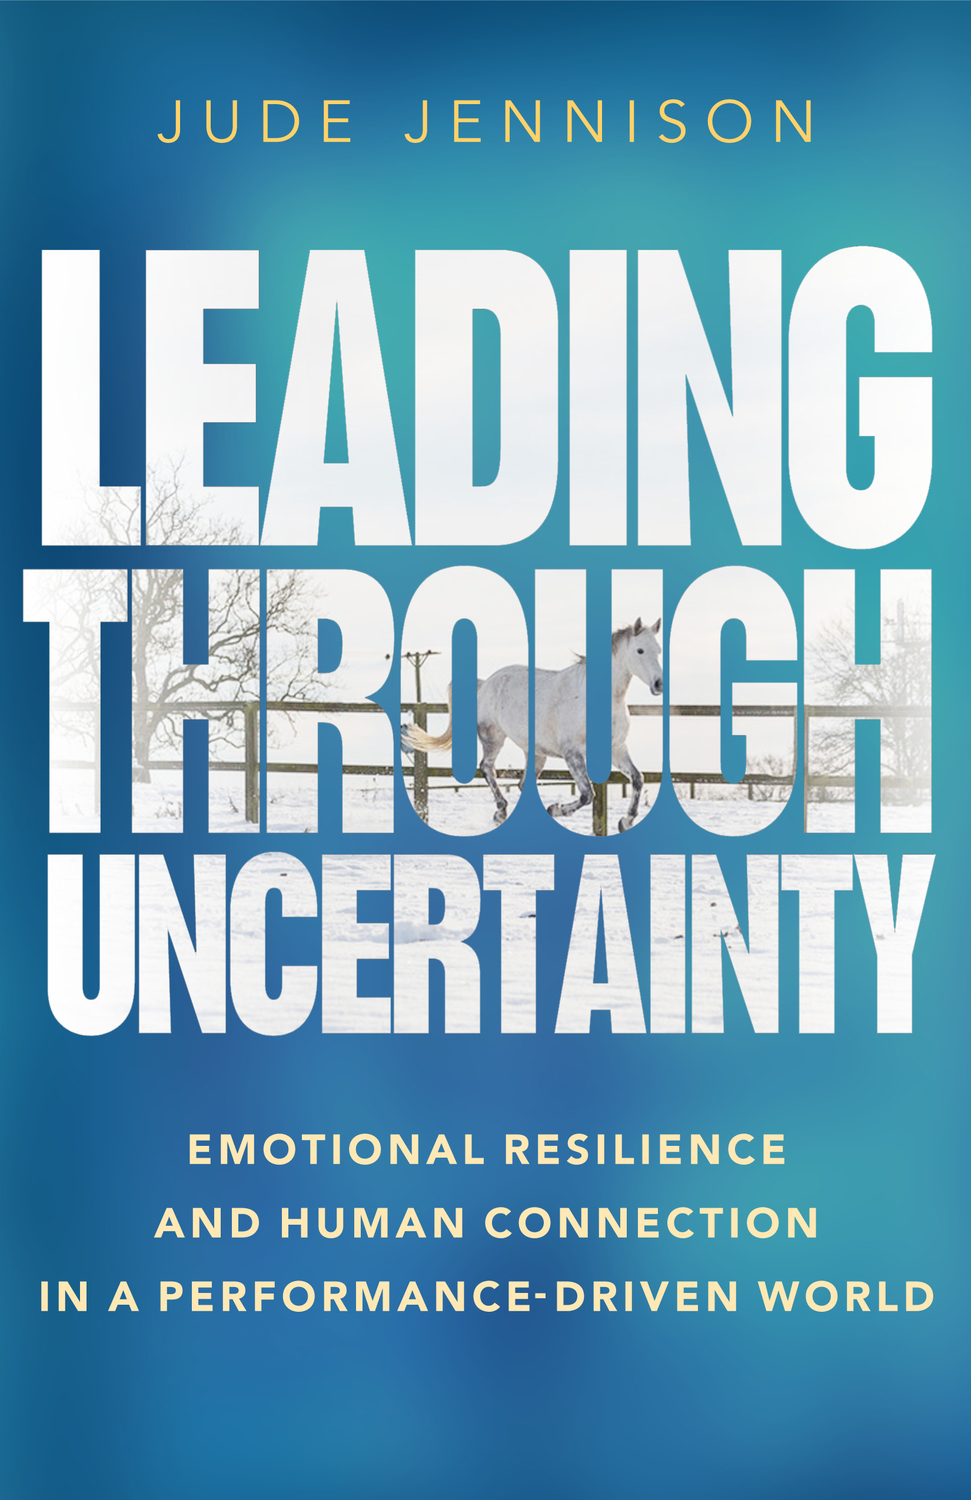 Book cover for Leading Through Uncertainty:  Emotional resilience and human connection in a performance-driven world a book by Jude  Jennison